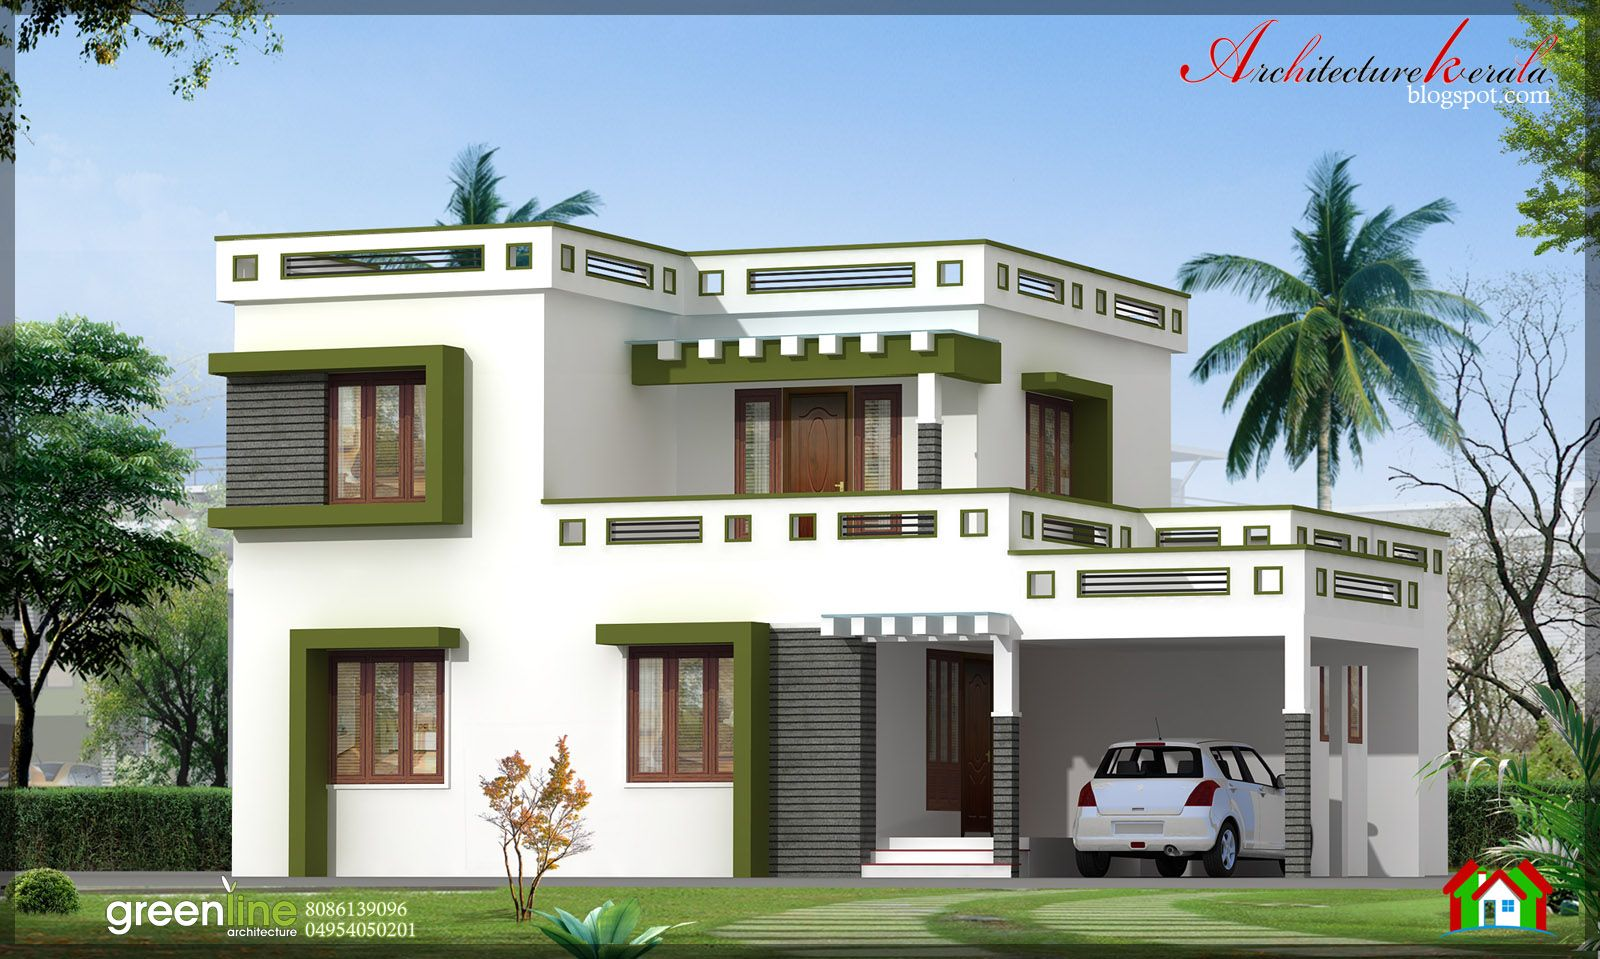 Kerala house plan photos and its elevations contemporary for Kerala house models and plans